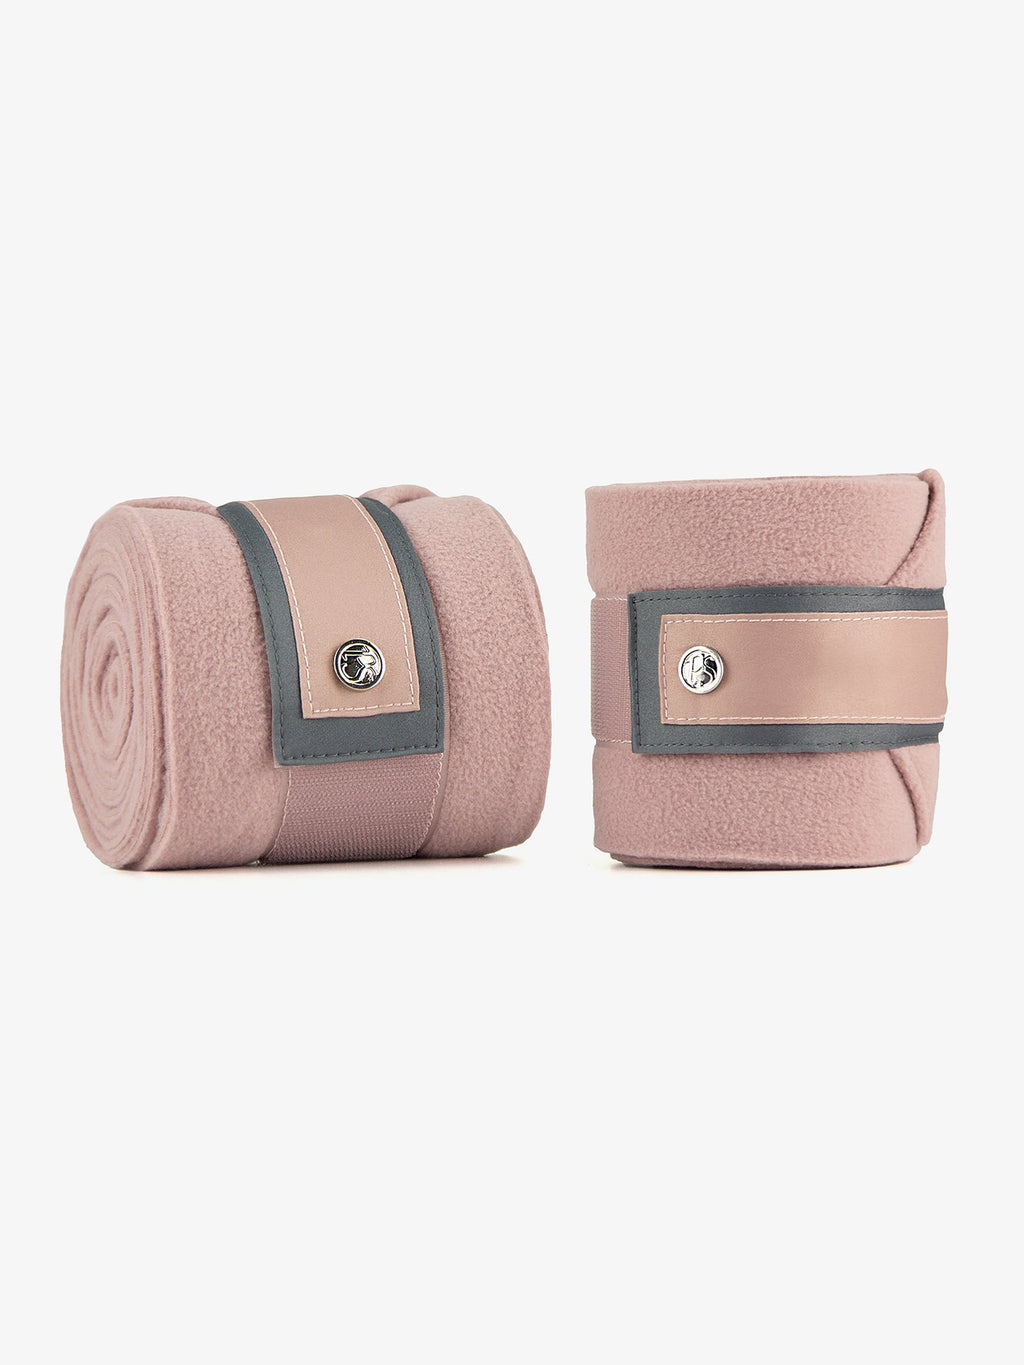 PS of Sweden Polo Wraps - Blush - The Dressage Store